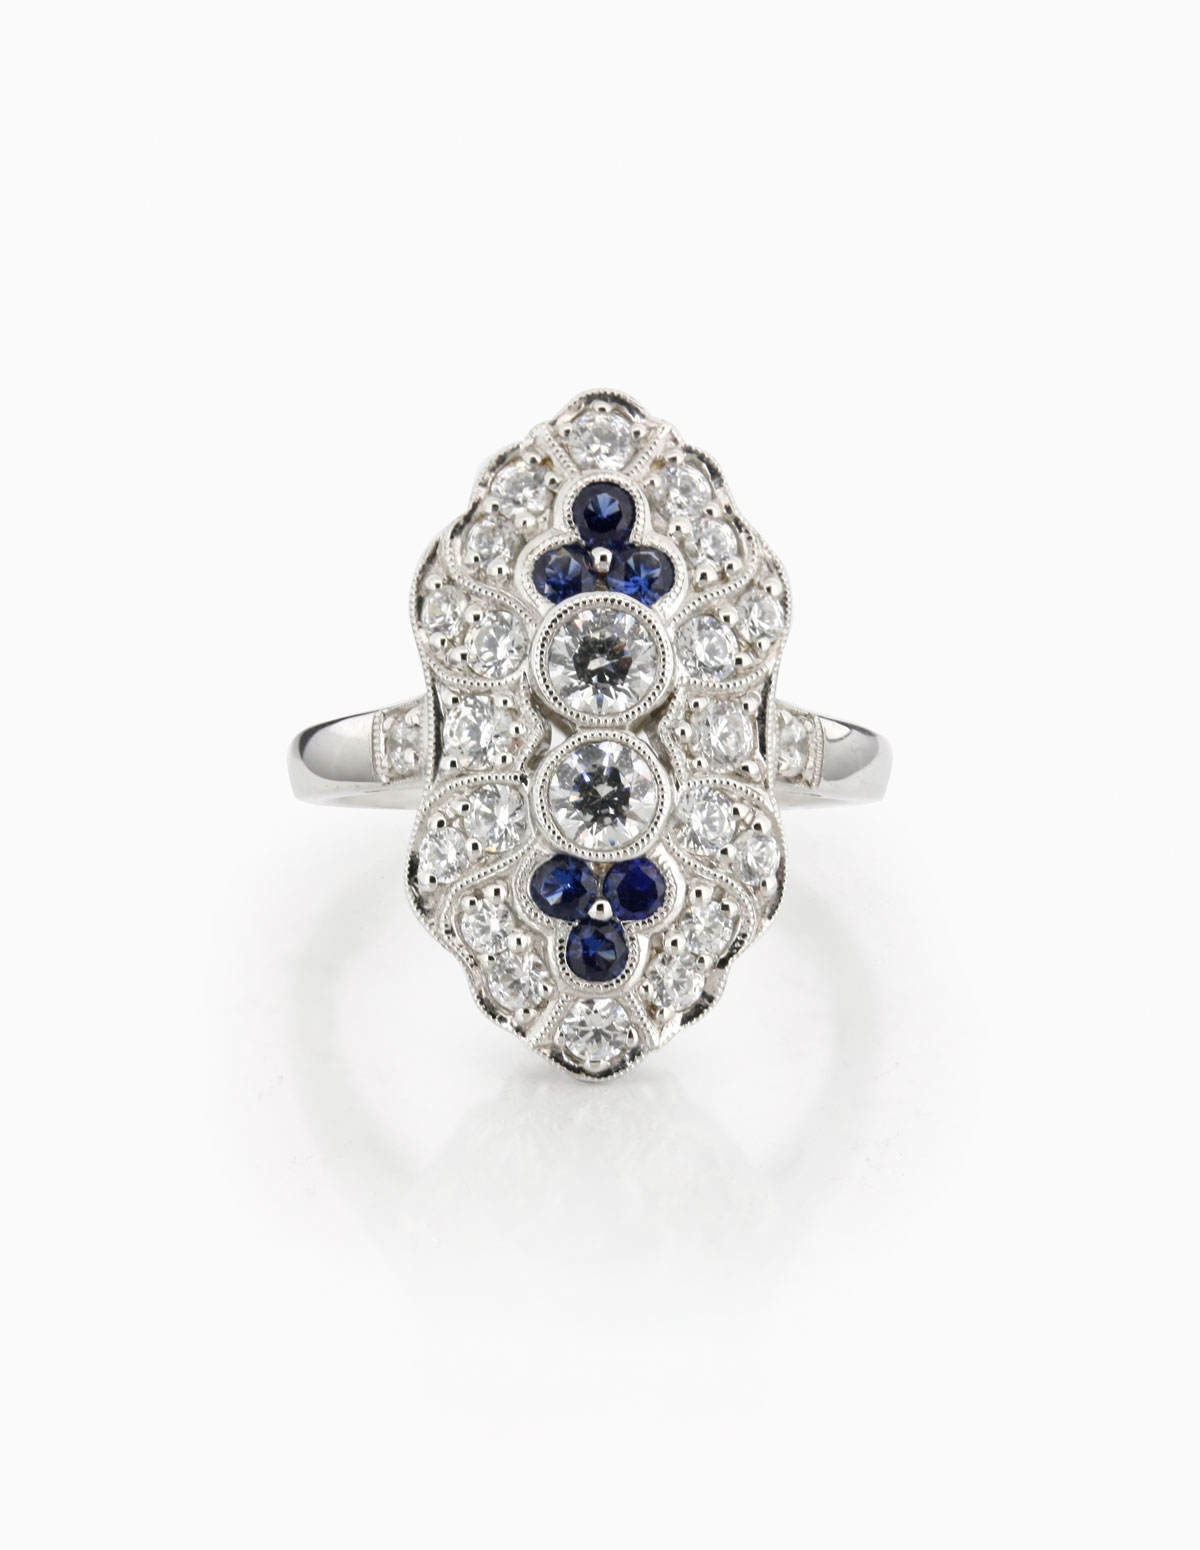 Diamond & Sapphire Vintage Style Ring – Thejewelleryworkshop For Best And Newest Diamond Vintage Style Rings (View 2 of 15)